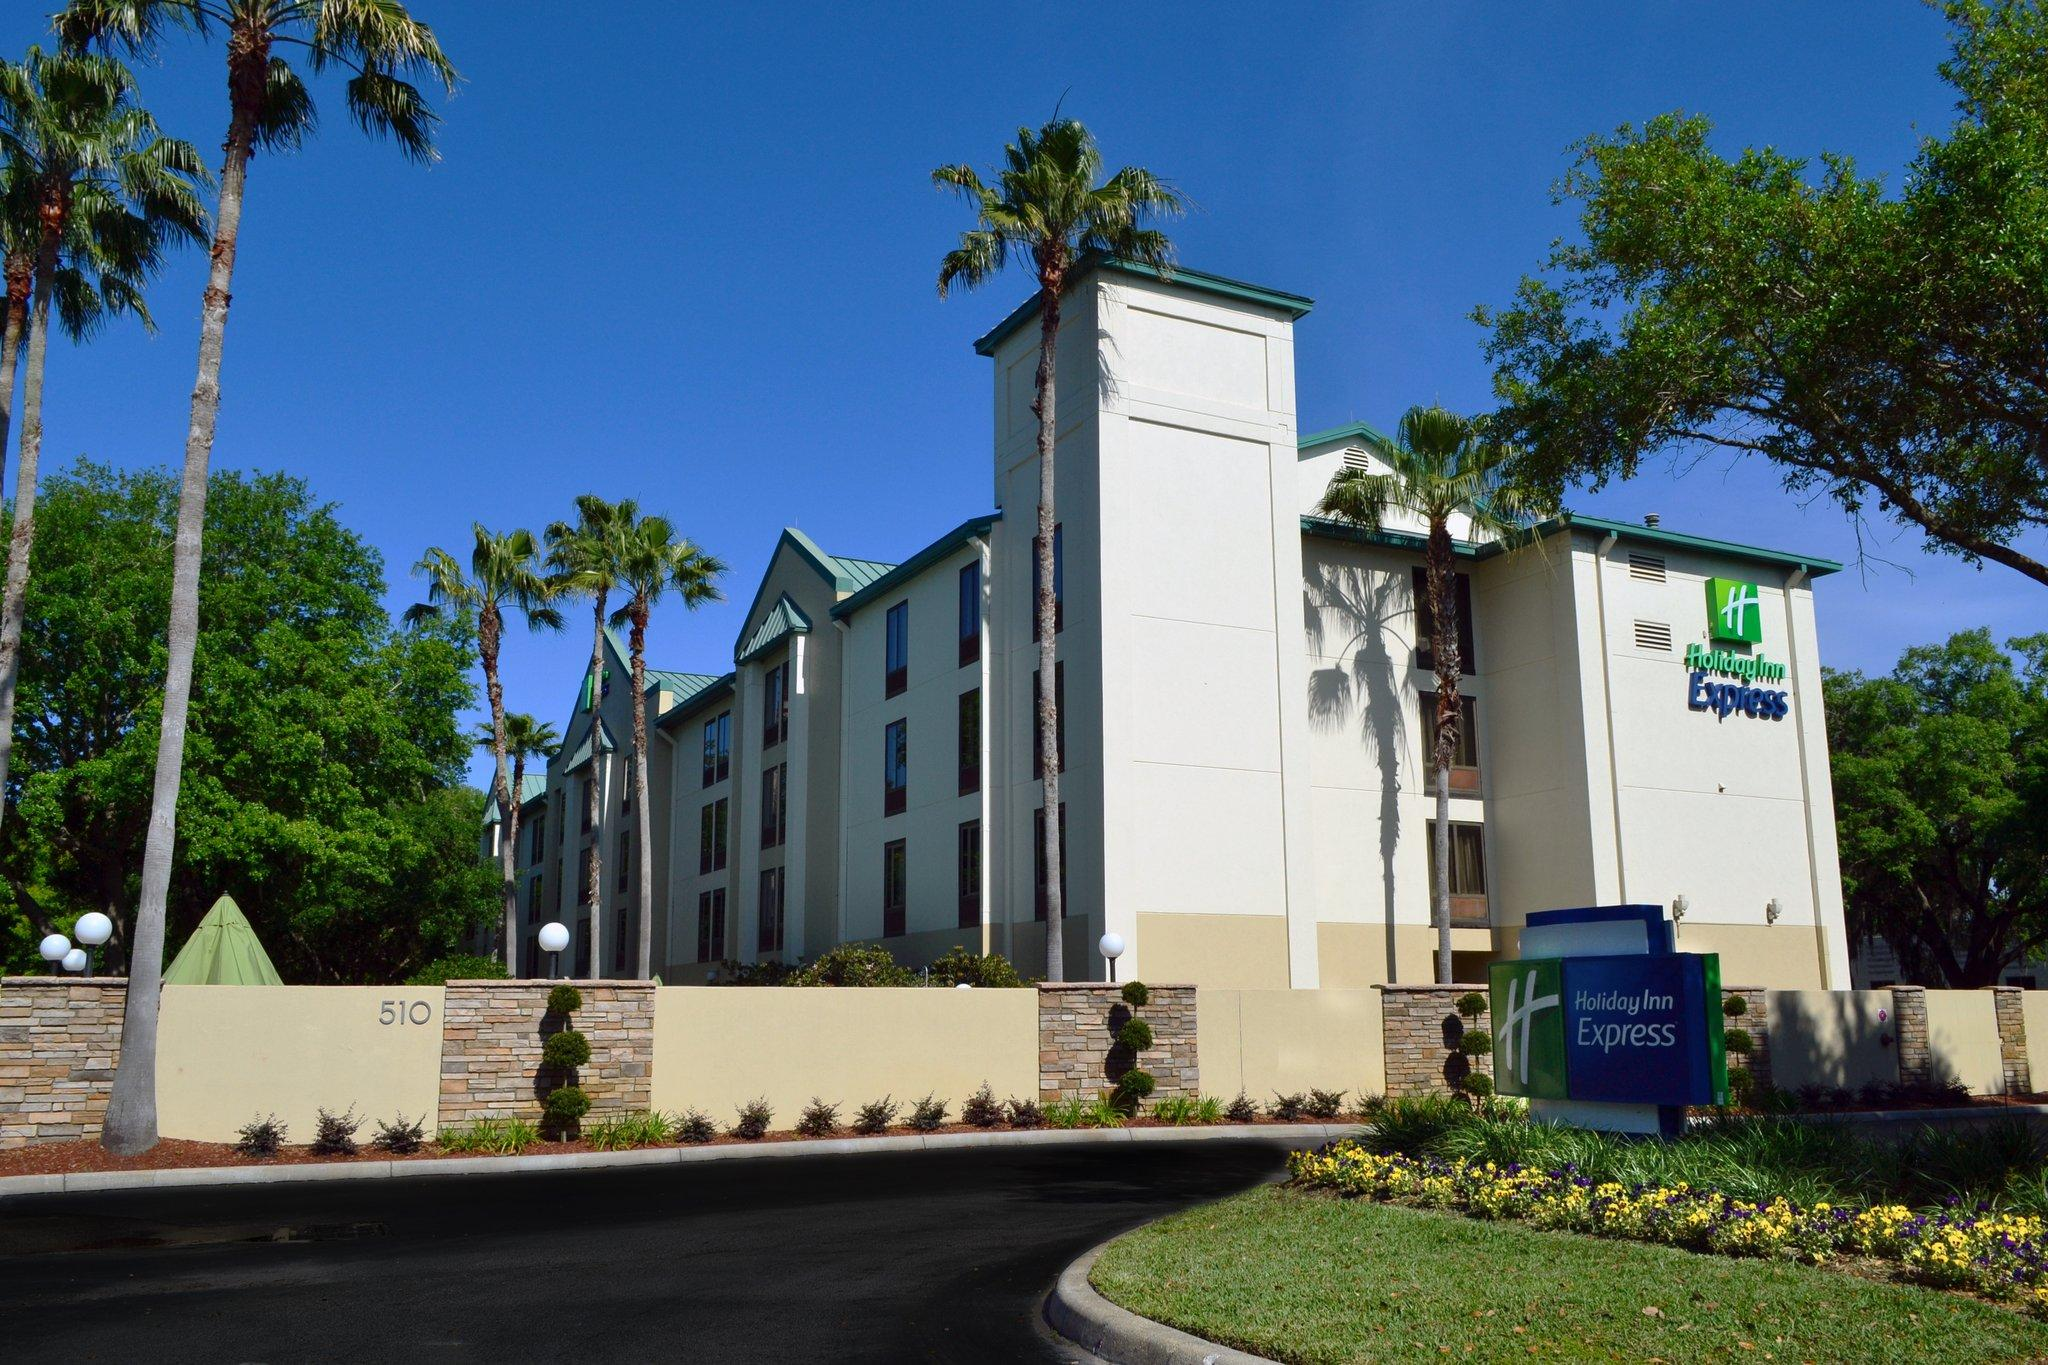 Holiday Inn Express Tampa-Brandon